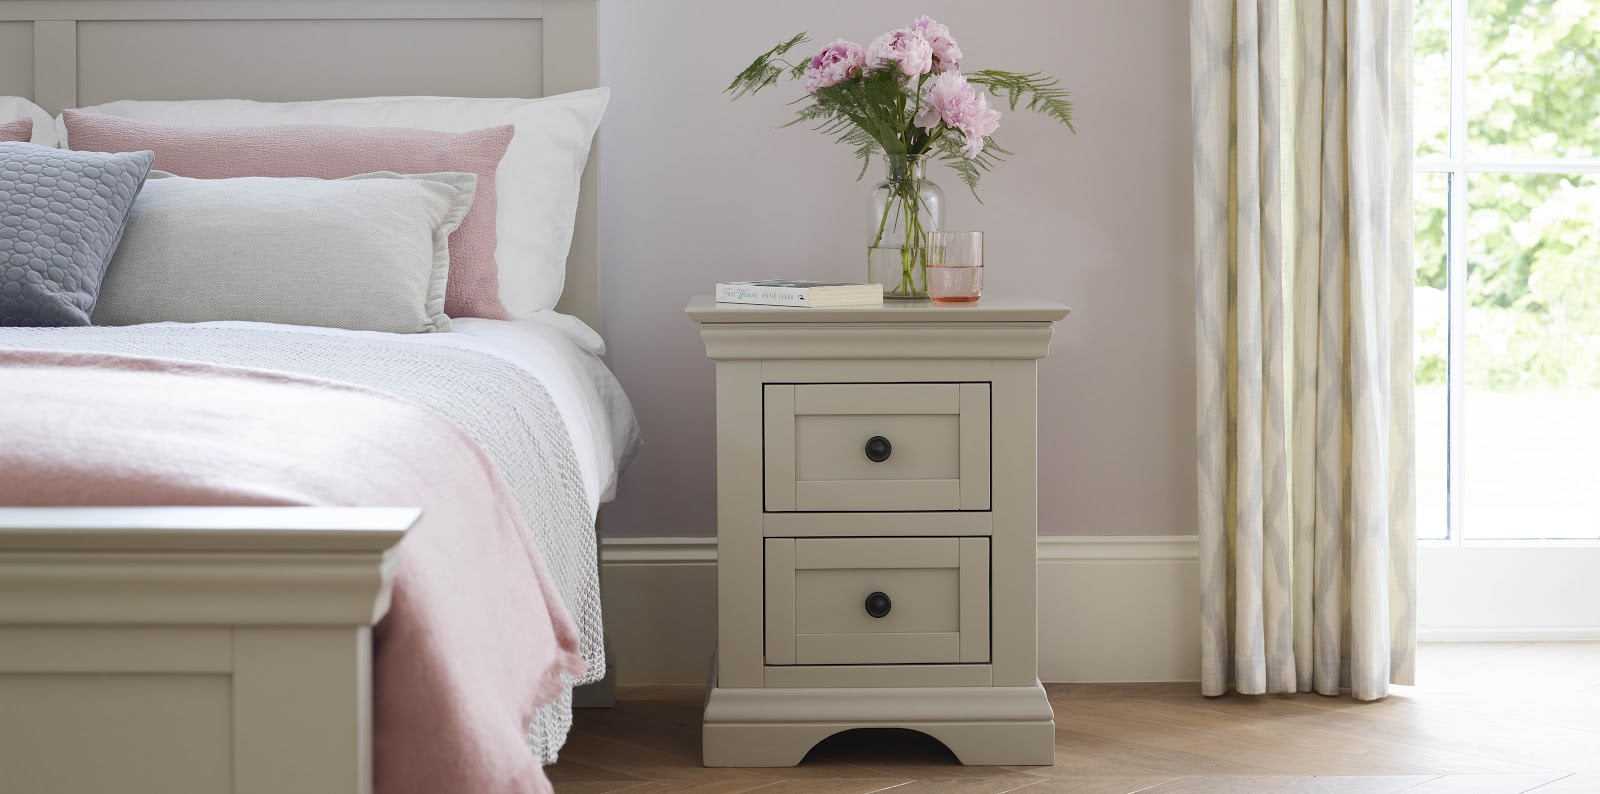 Arlette Bed & Bedside Table which pink accessories